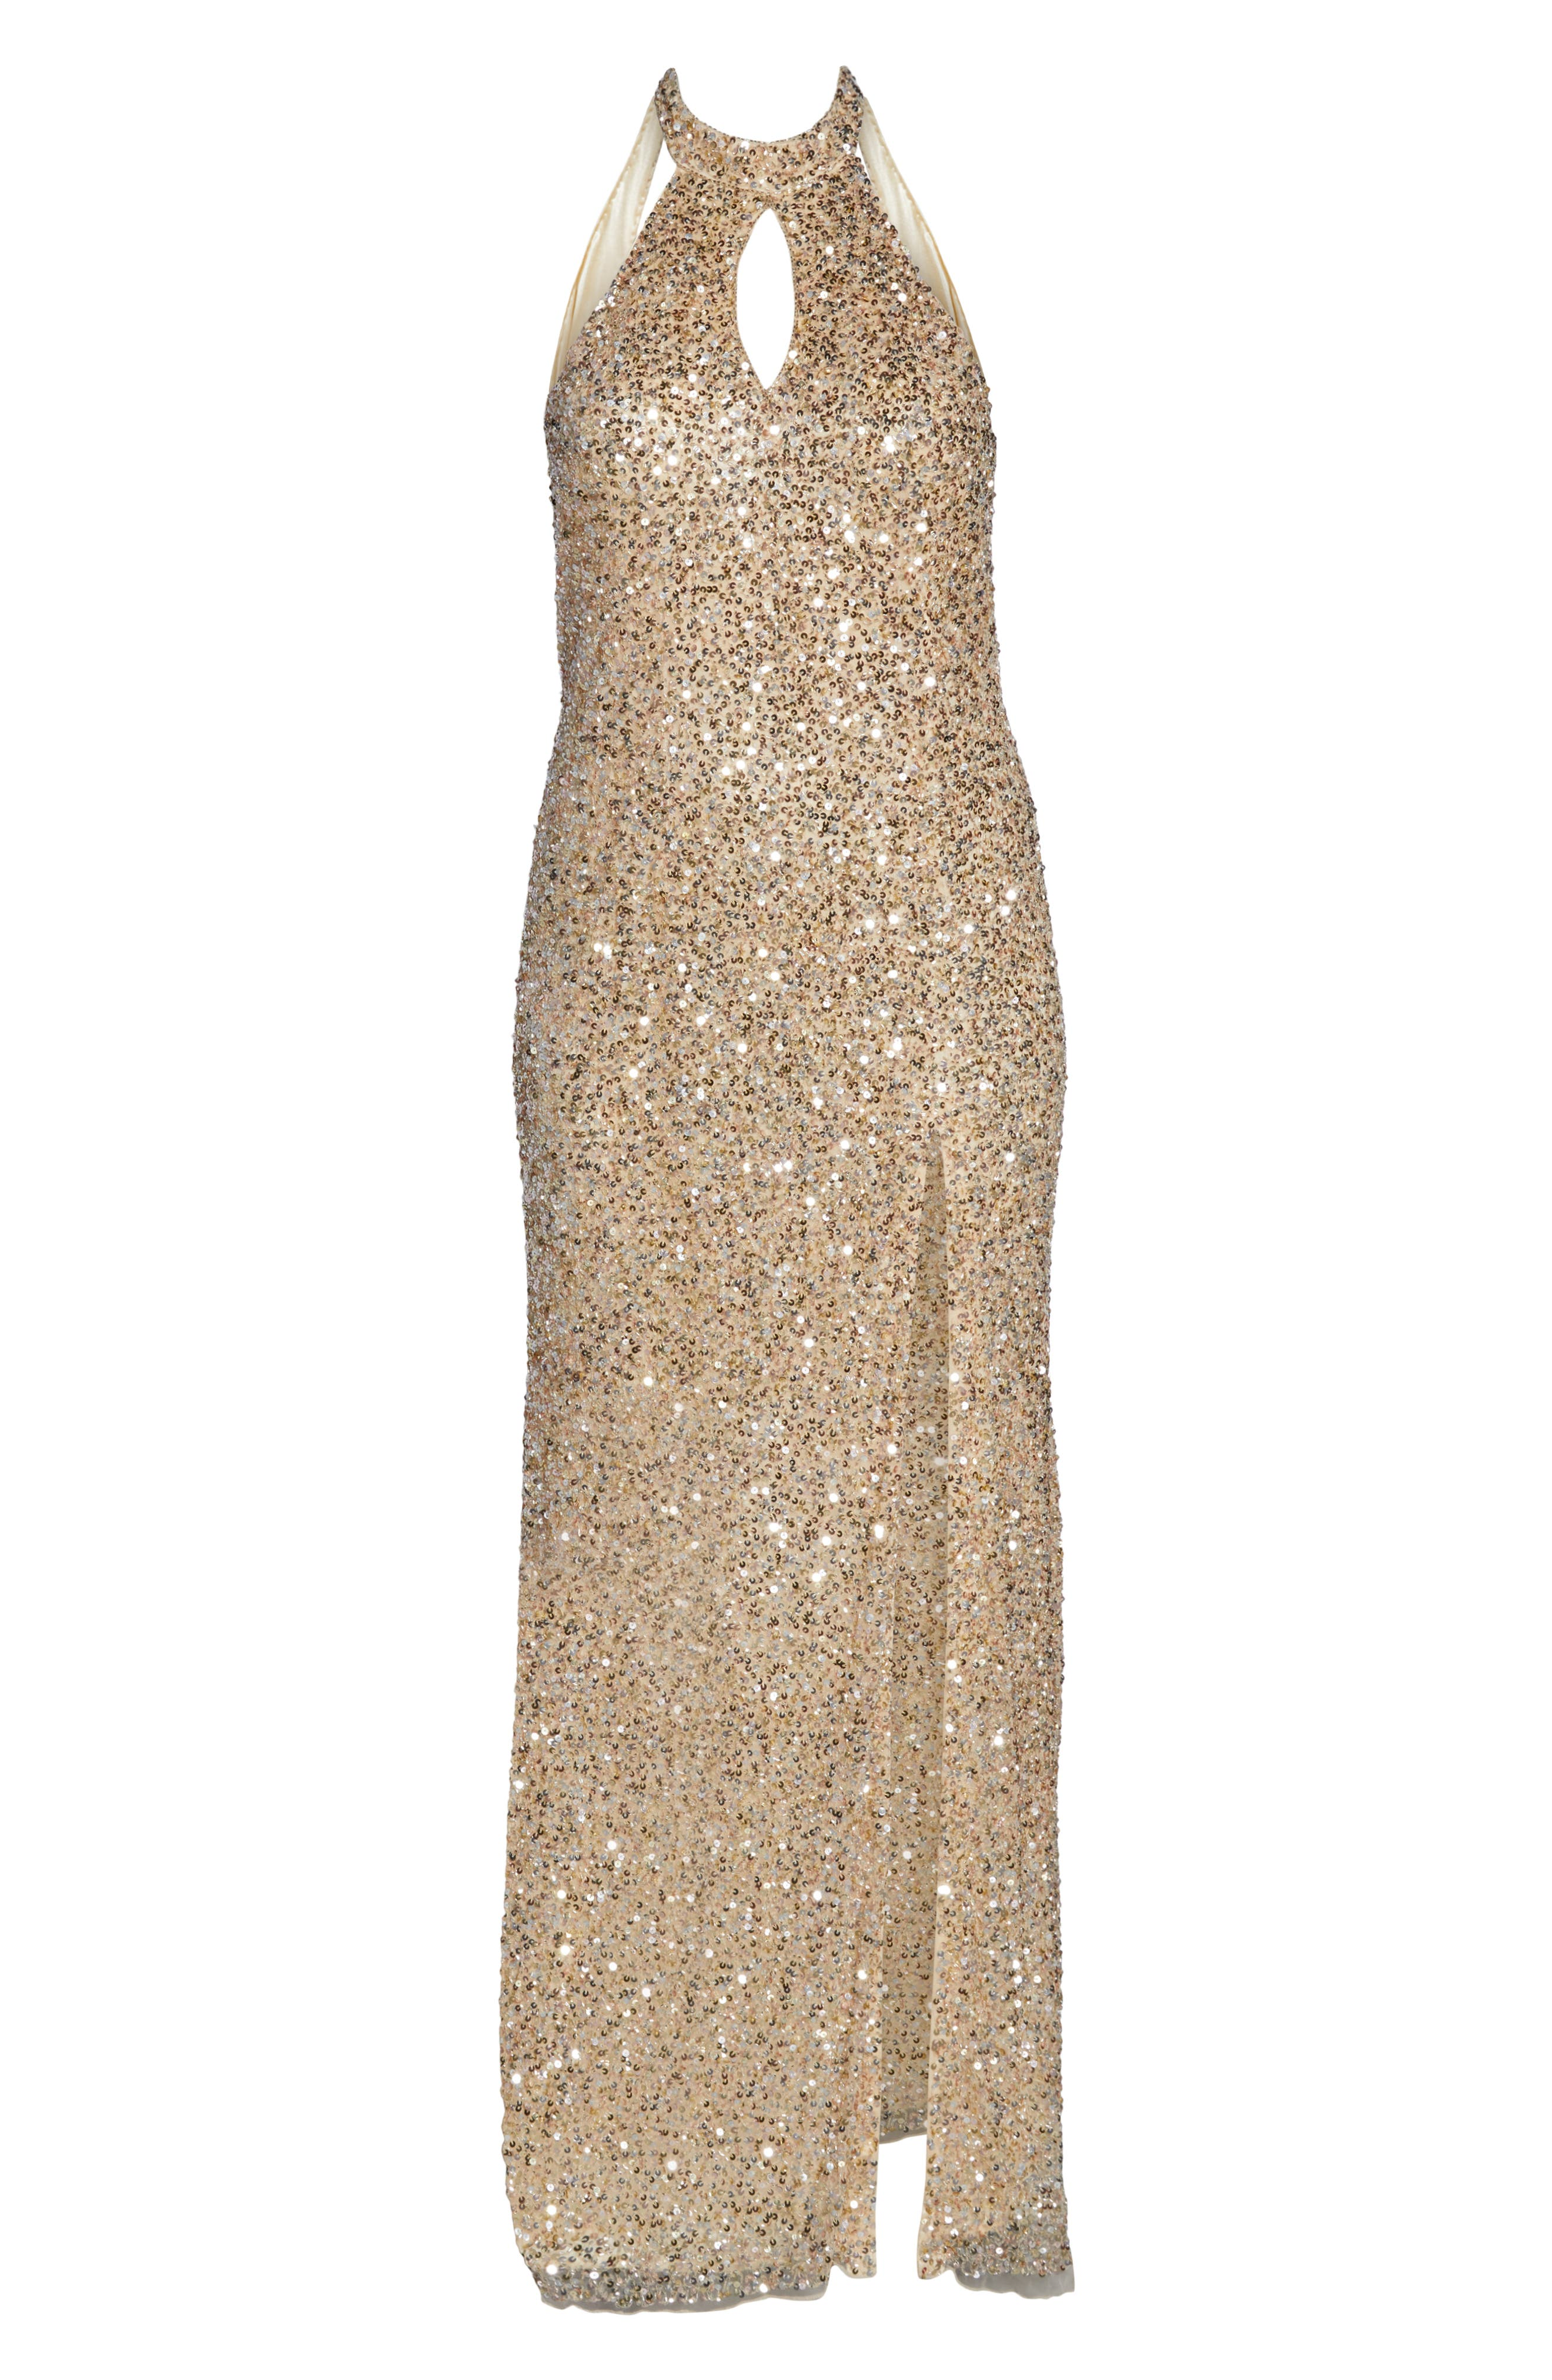 MAC DUGGAL, Sequin Mesh Evening Dress, Alternate thumbnail 7, color, NUDE GOLD